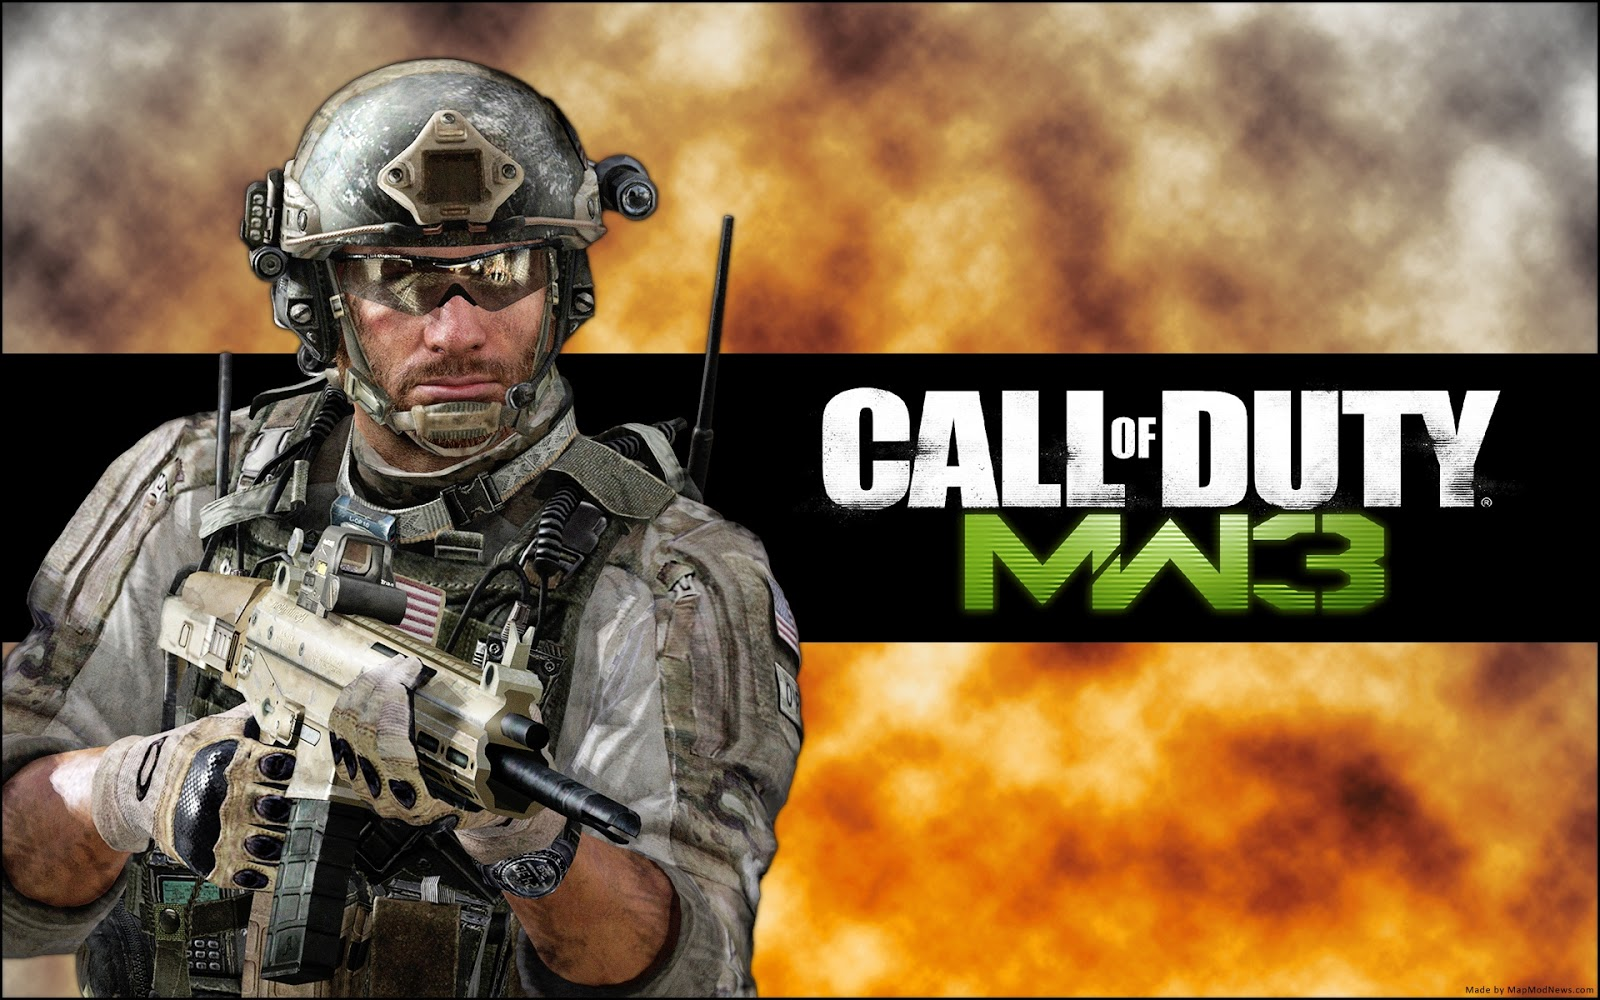 http://4.bp.blogspot.com/-UF37vYJvtxY/UNSrC8FxZRI/AAAAAAAAAPI/_ZNB8_zH1kI/s1600/call+of+duty+modern+warfare+3+hd+wallpapers+(15).jpg